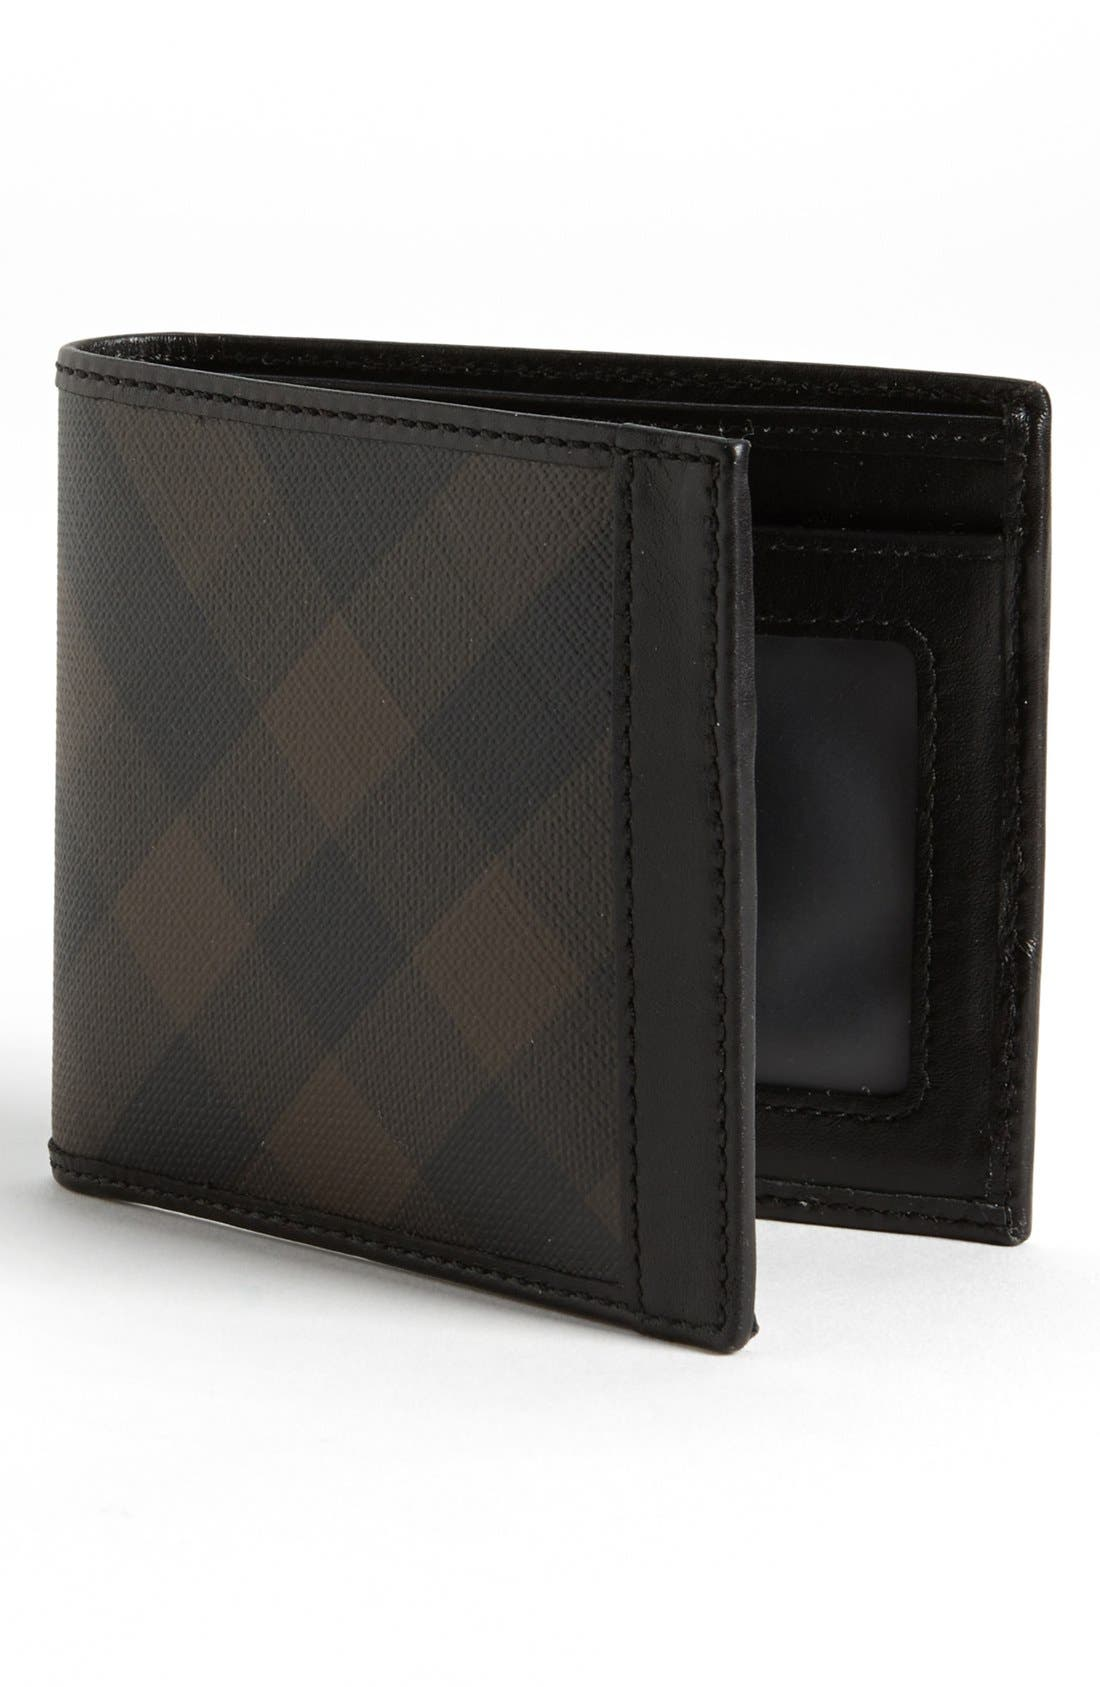 Alternate Image 1 Selected - Burberry Brit Check Print Billfold